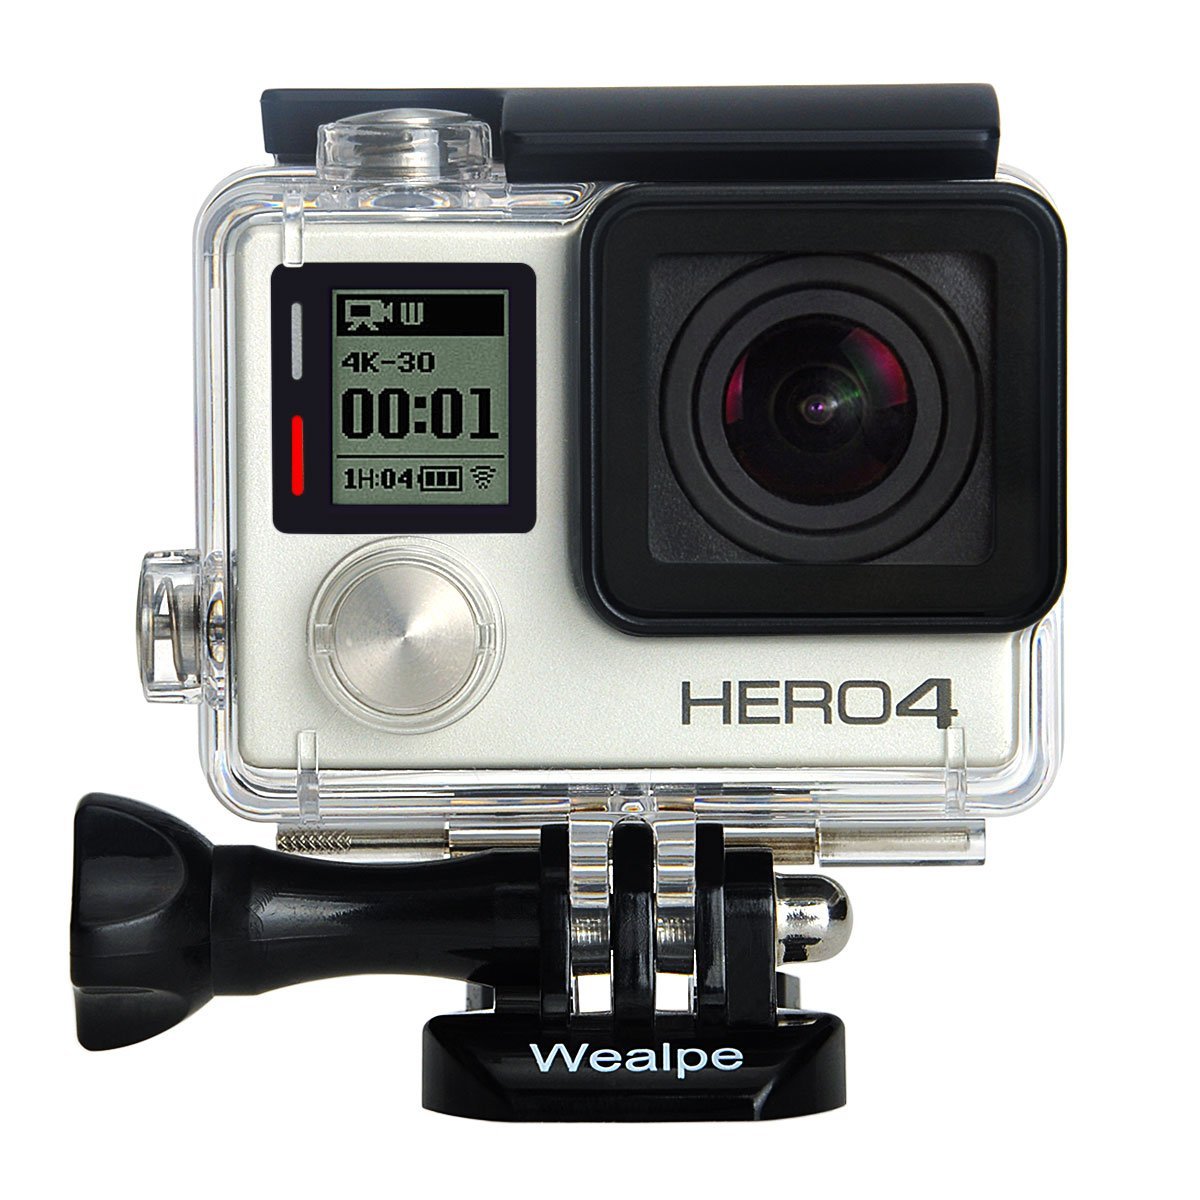 Wealpe Waterproof Housing Case Underwater Protective Dive Housing for GoPro Hero 4, 3+, 3 Cameras by Wealpe